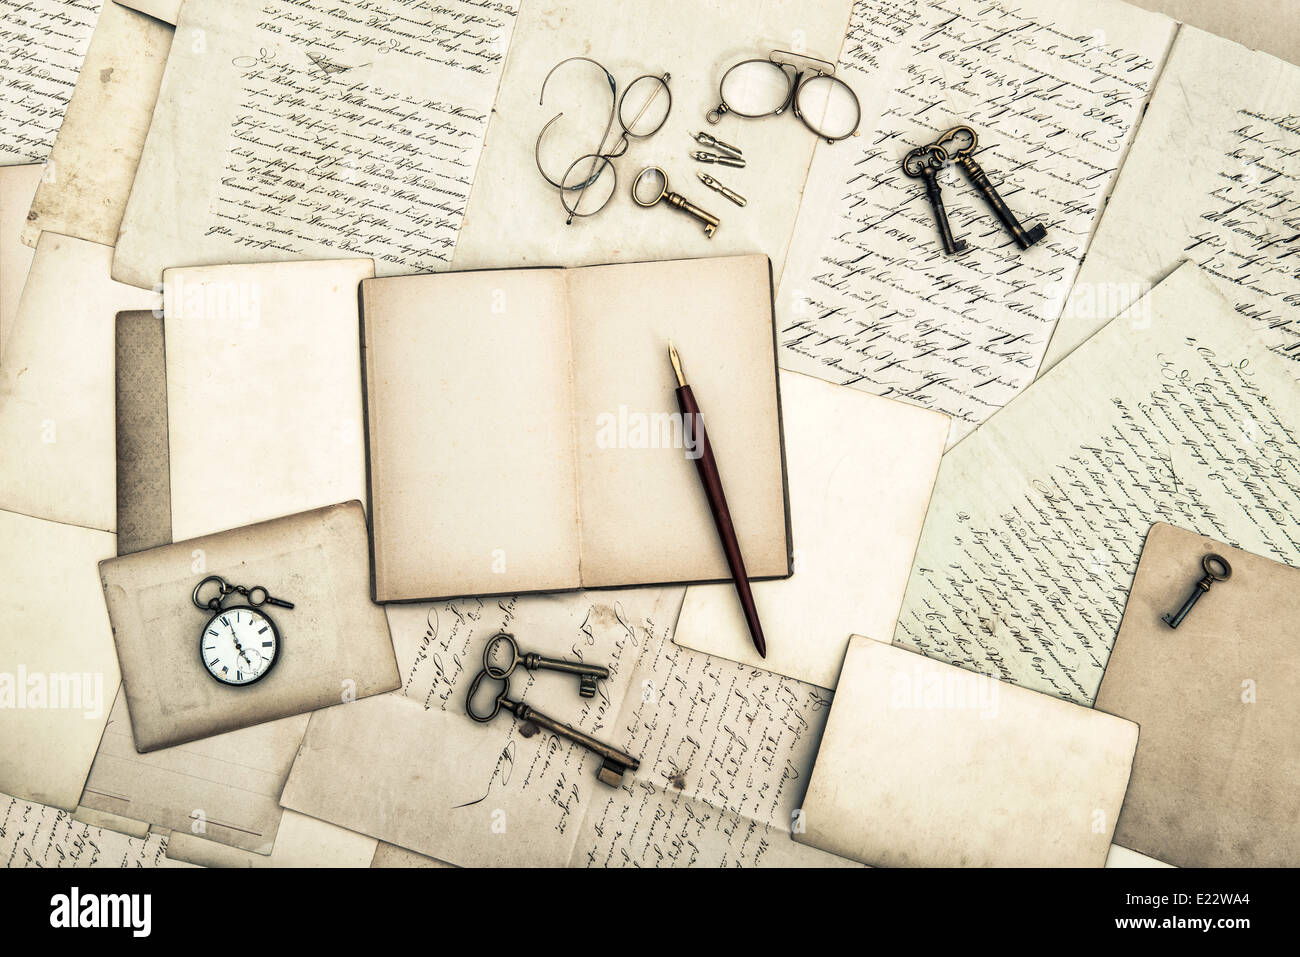 antique office tolls and keys, old diary book and letters. nostalgic sentimental background - Stock Image